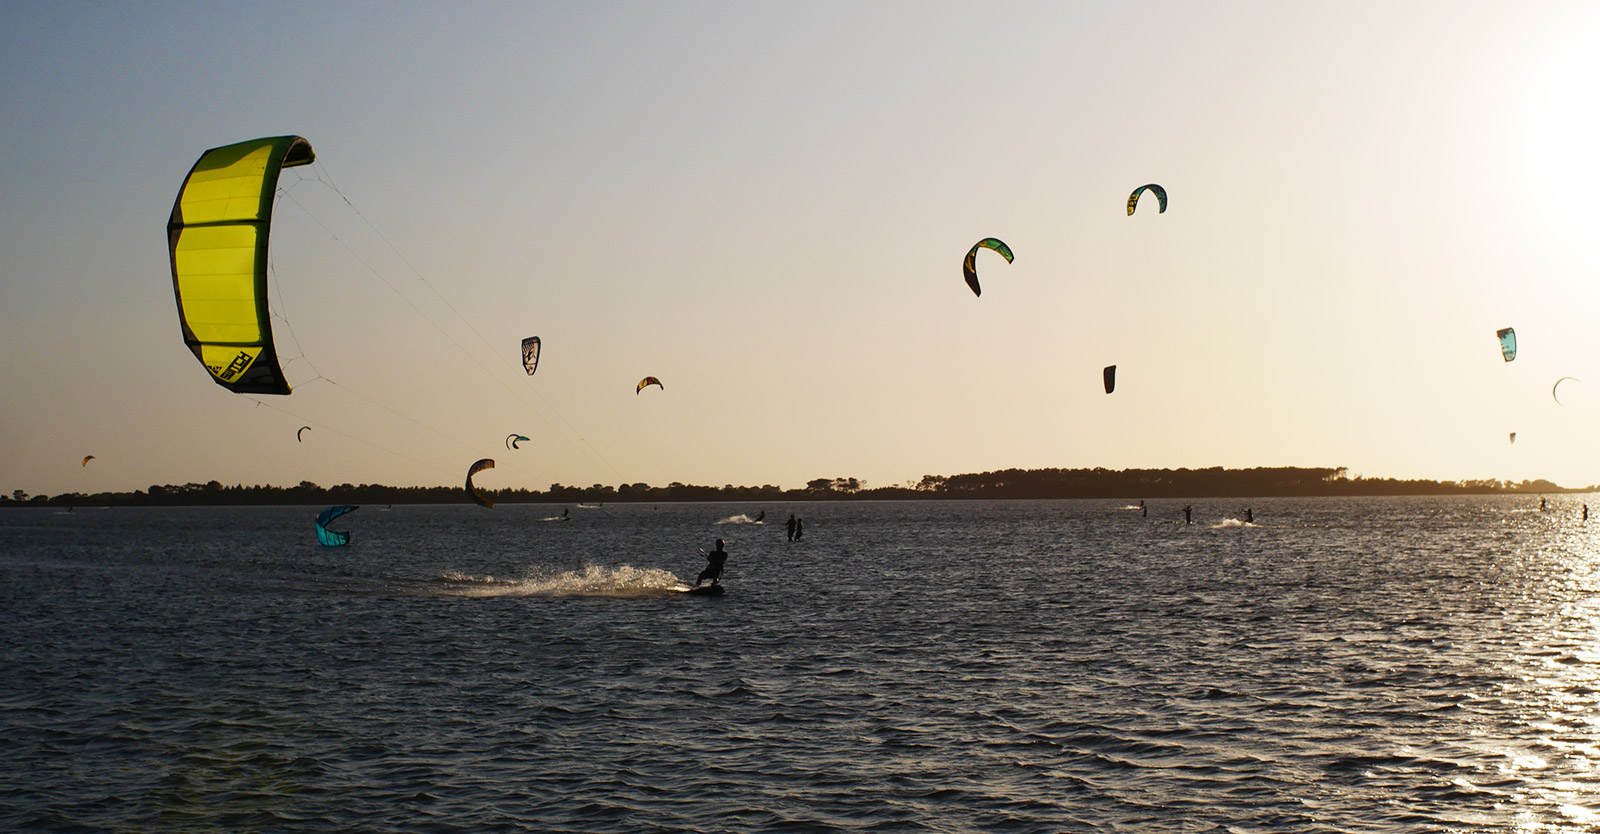 Switch Krypto and other kites in Lo Stagnone's sunset